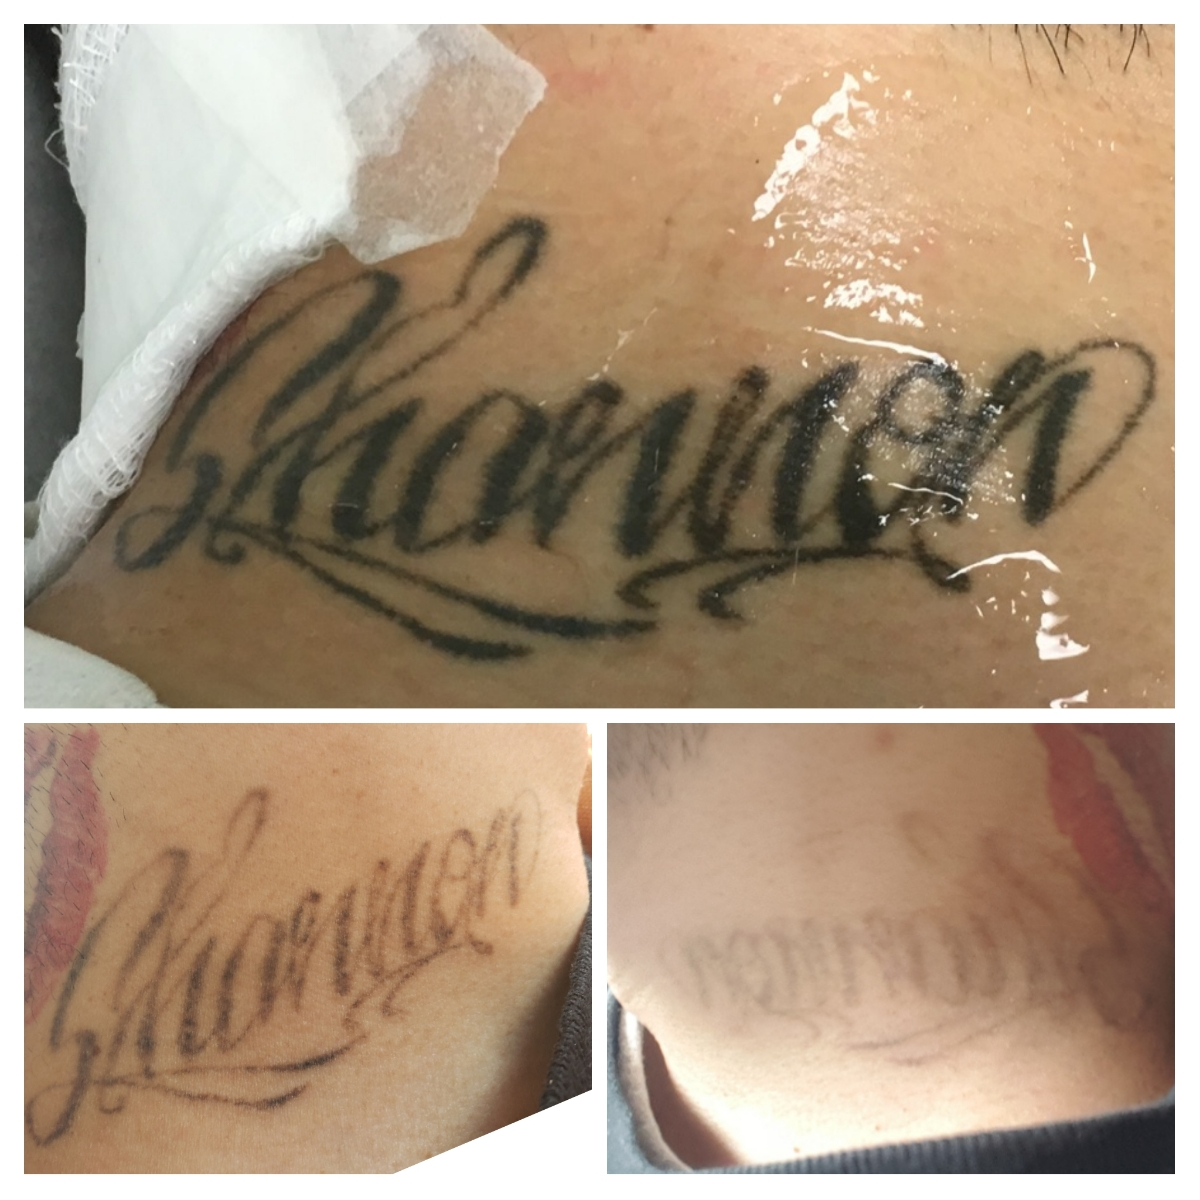 Laser Tattoo Removal Specialist - Munster, IN: N  Hasan, MD